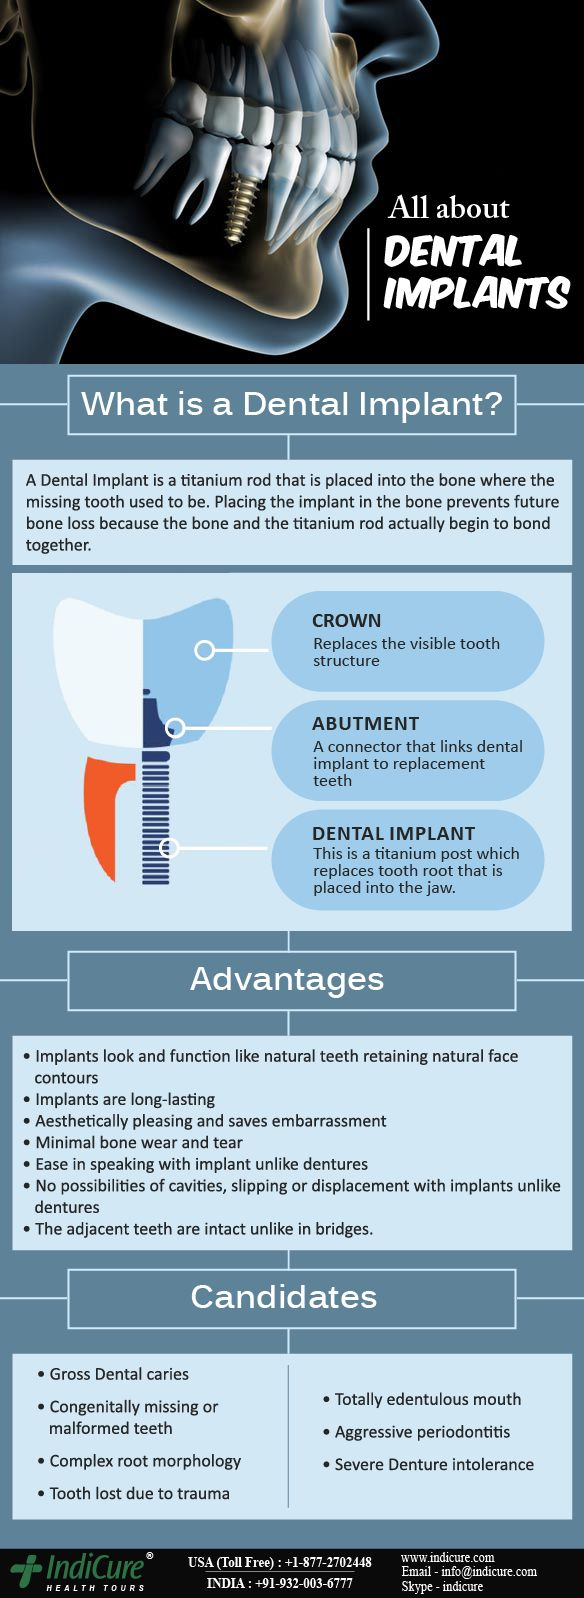 Teeth restored with dental implants can't get cavities! An replacement tooth, or crown, doesn't decay like a natural tooth, but you still must brush, floss and care for it and your surrounding natural teeth and gums in the same manner as natural teeth. Regular professional cleanings and dental check-ups also are essential. #dentalimplants #dentistry